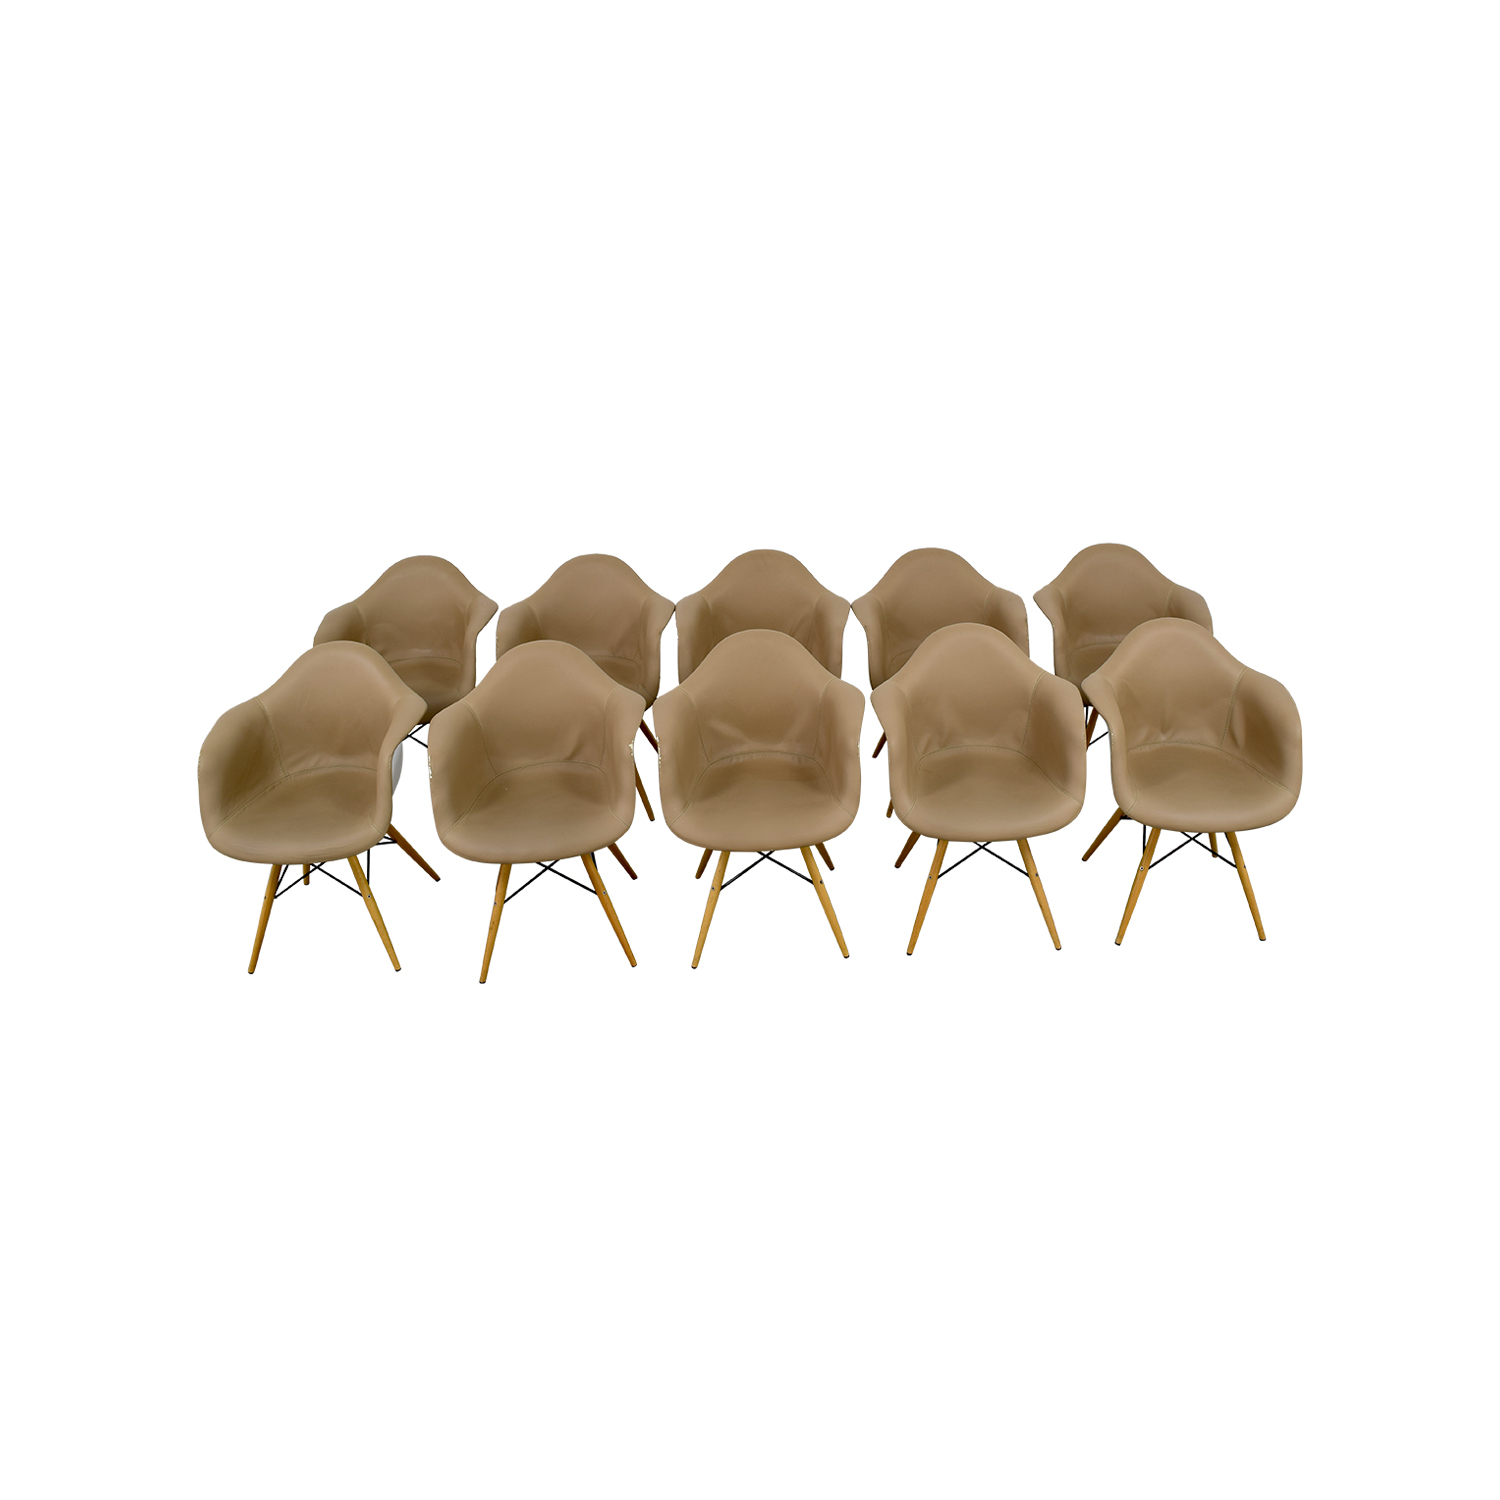 buy Room & Board Beige Leather Chairs Room & Board Home Office Chairs